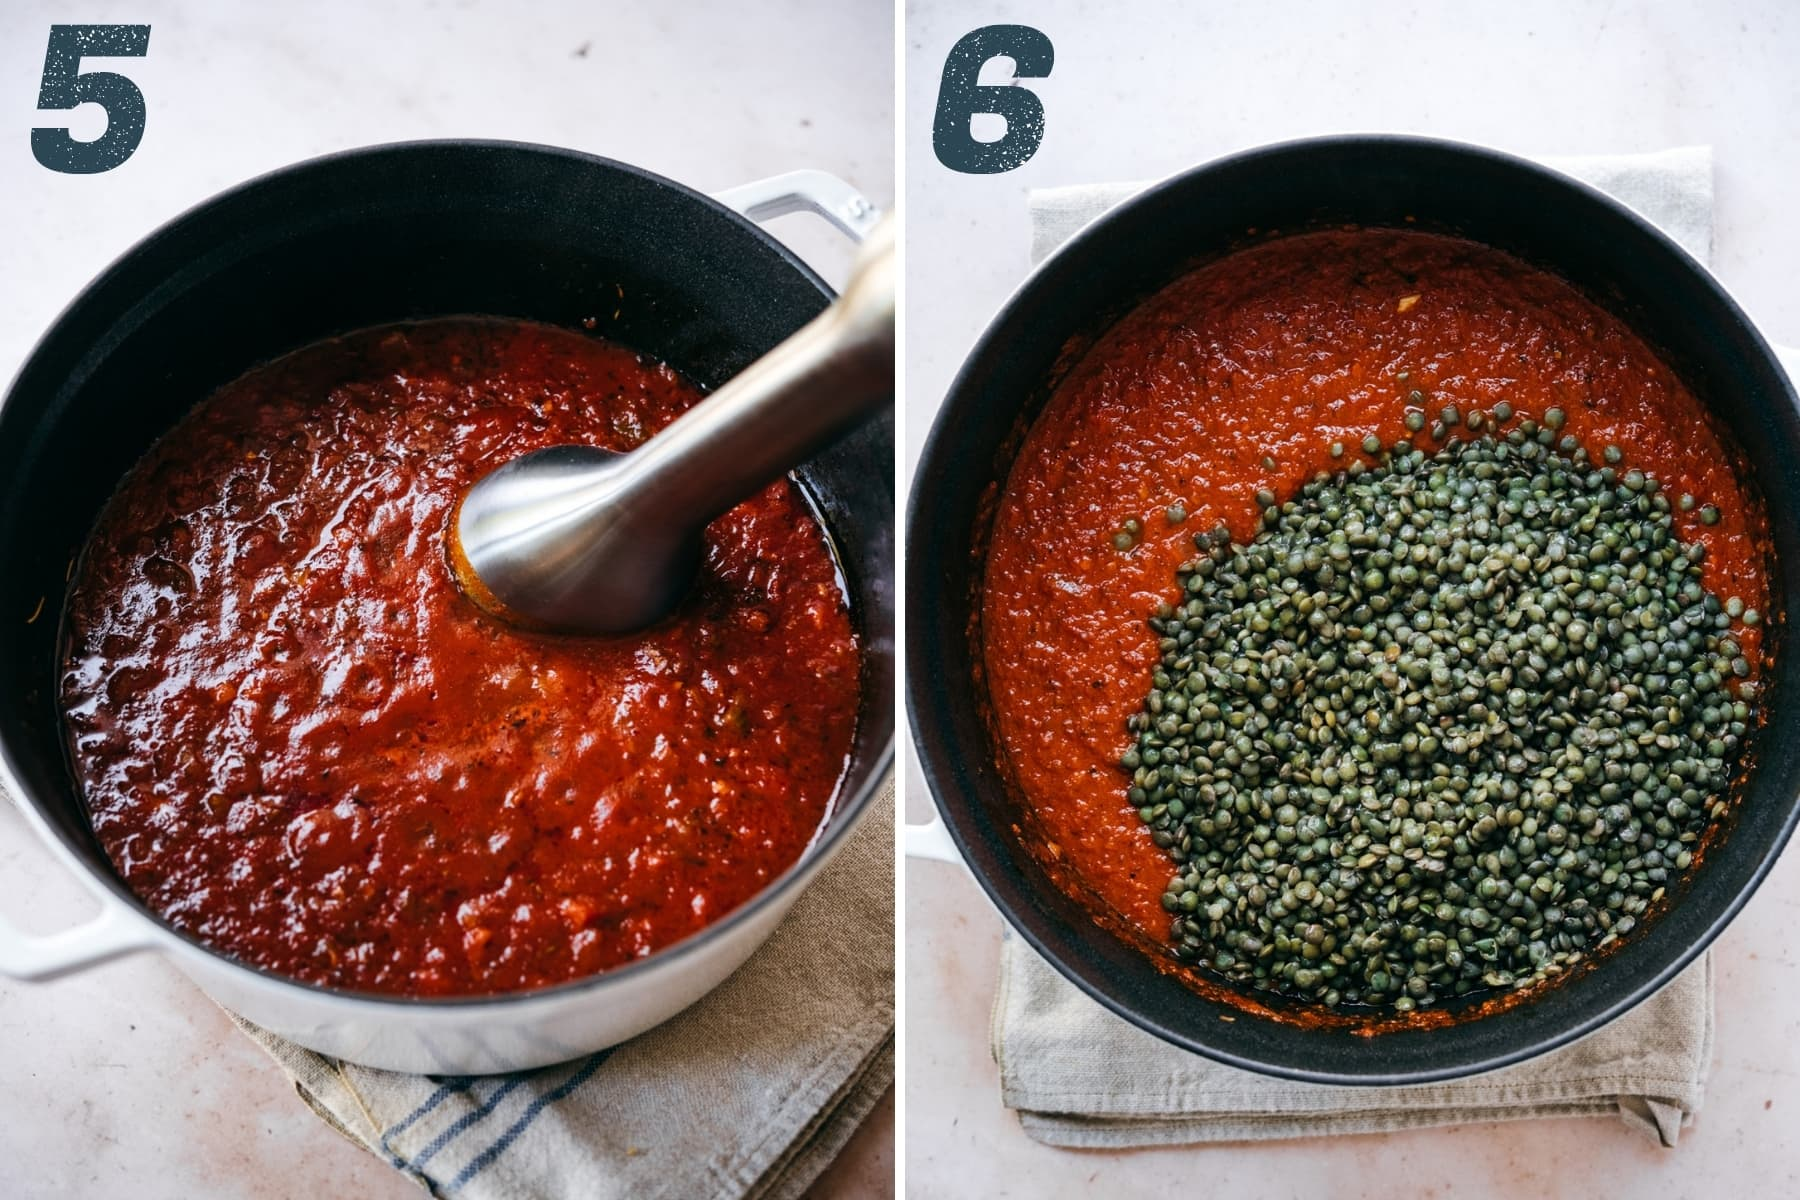 on the left: pureed tomato sauce in a pot. on the right: tomato sauce with cooked lentils before stirring in.